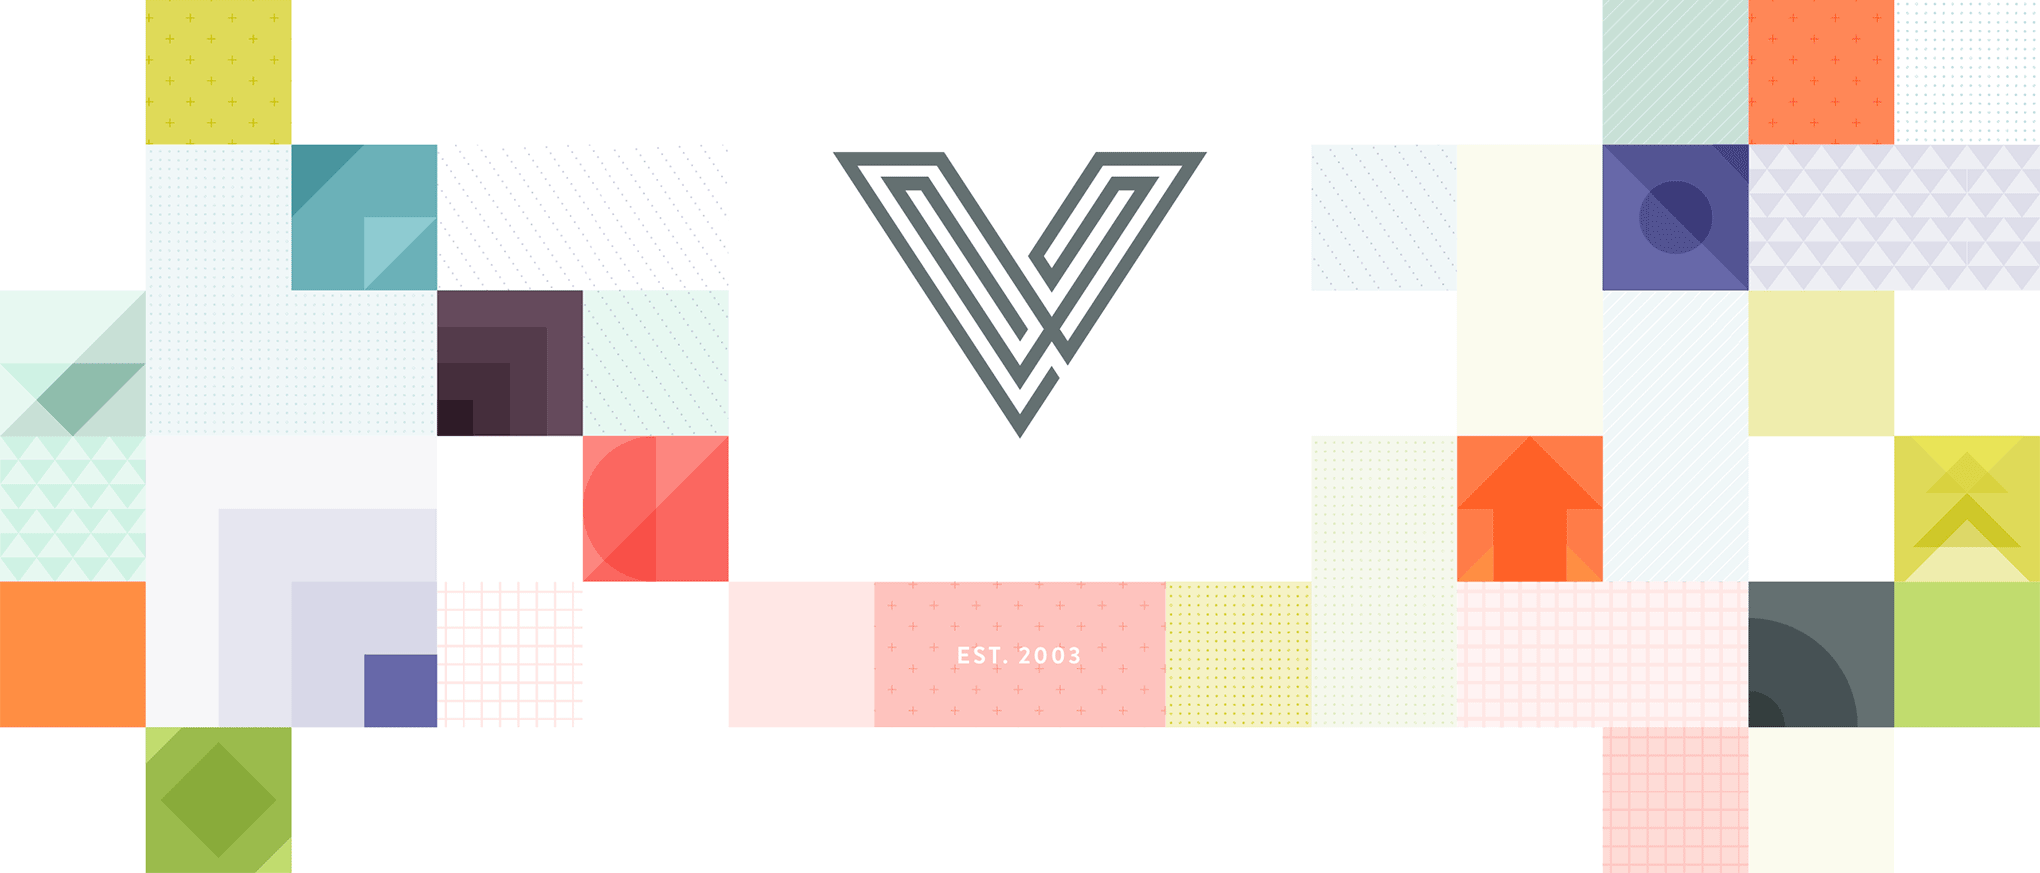 I left enough room empty to place my V icon at the top center. The idea was to use this as my homepage header.